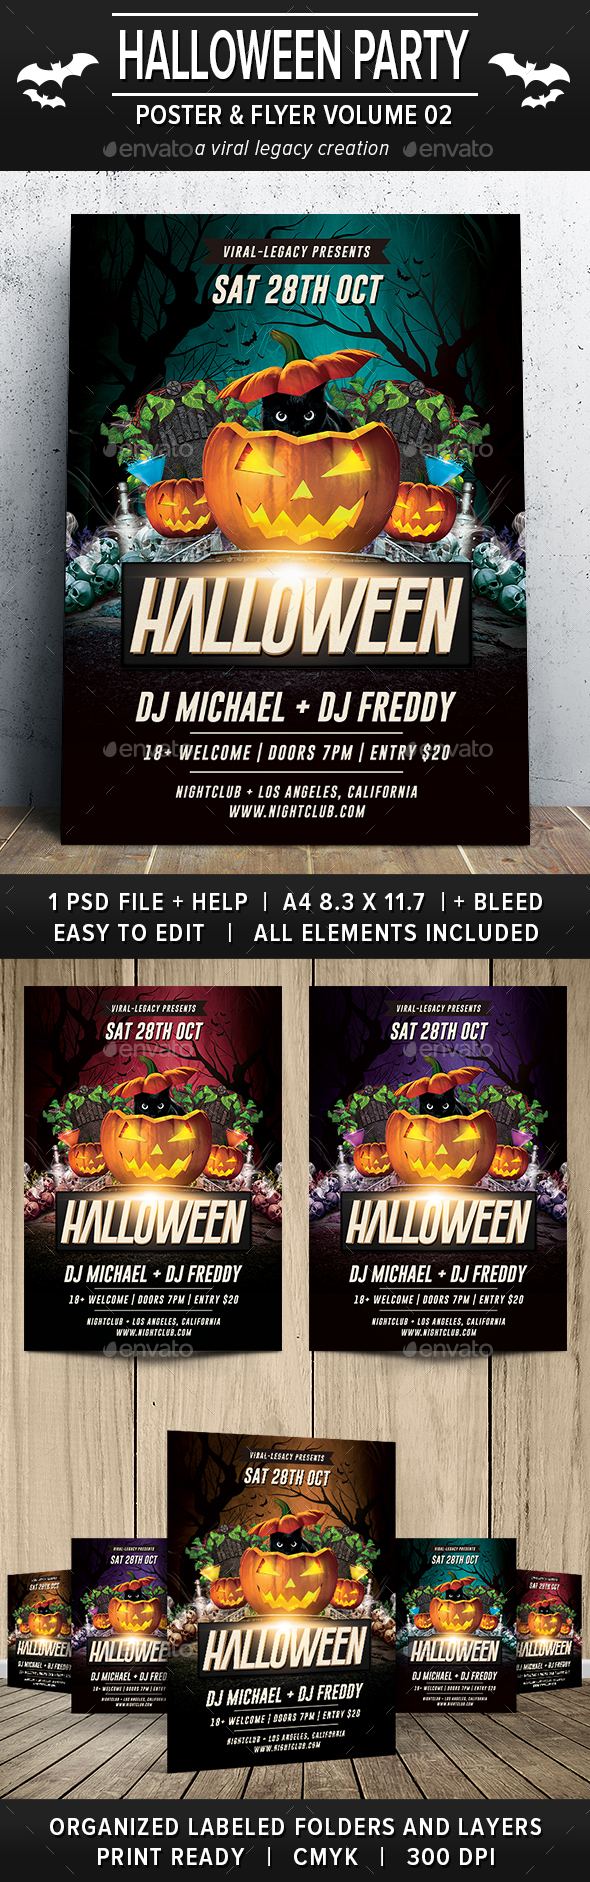 Halloween Party Poster / Flyer V02